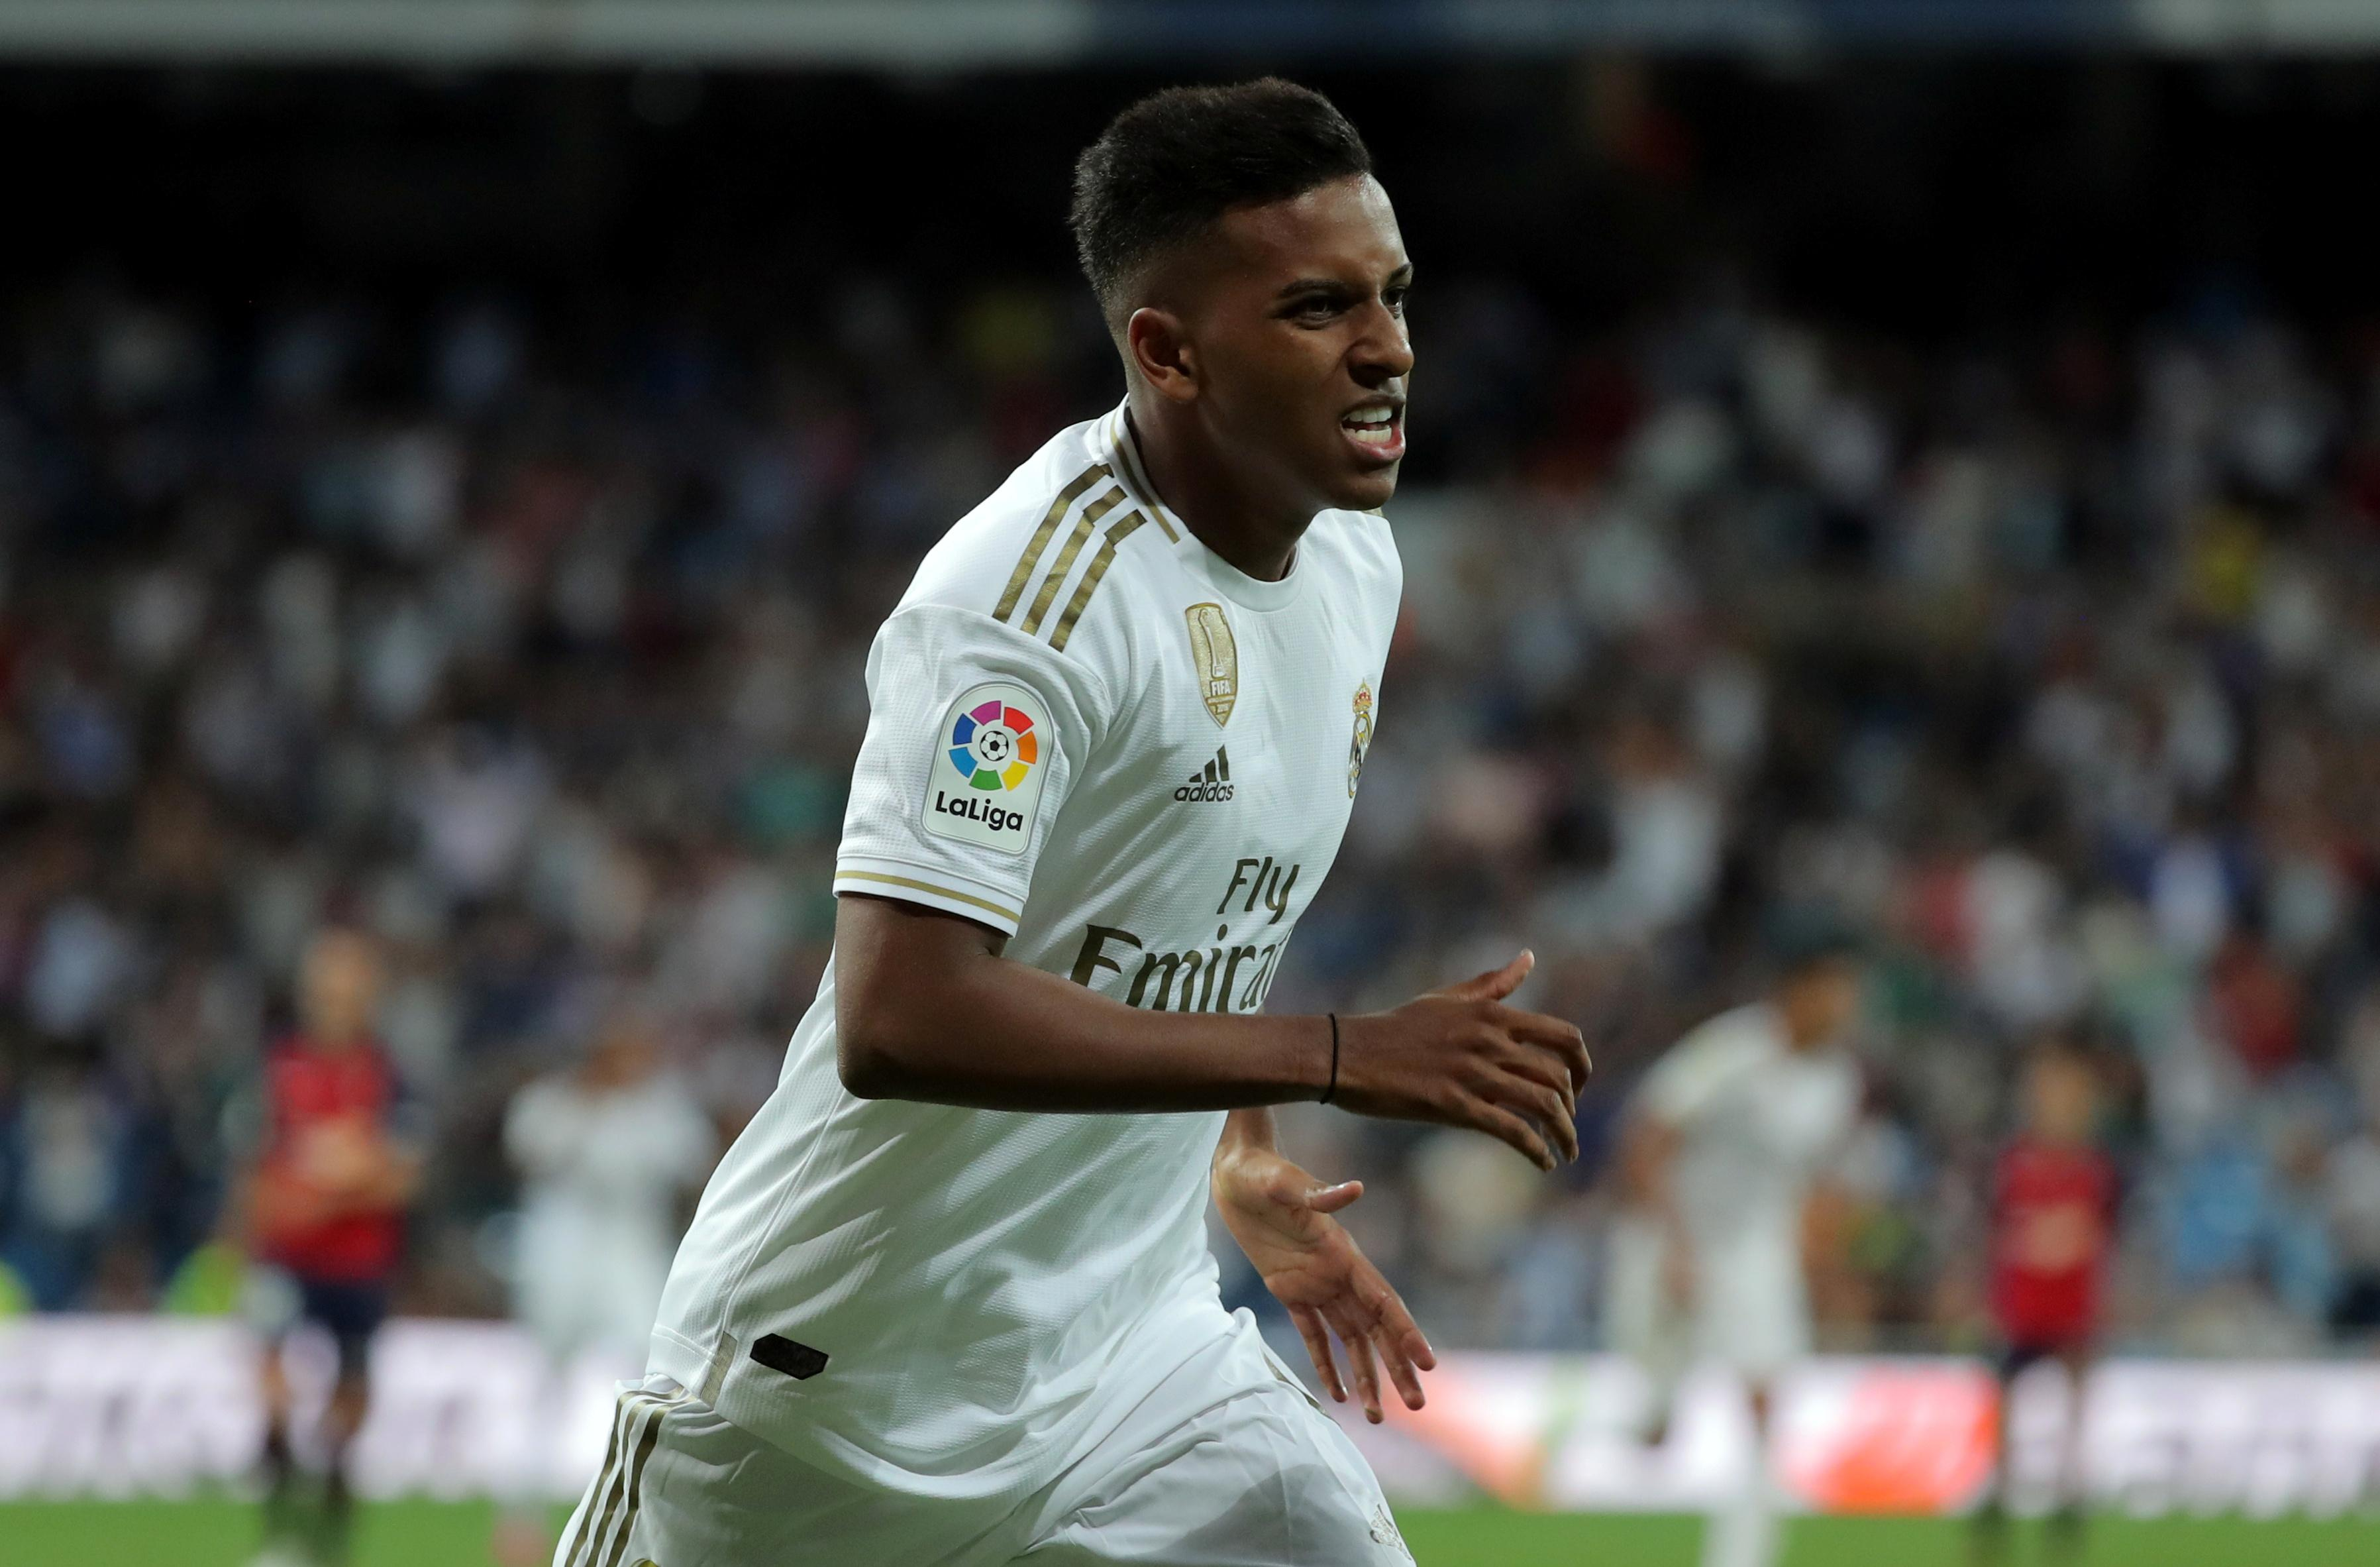 Rodrygo left out of Madrid derby despite superb debut